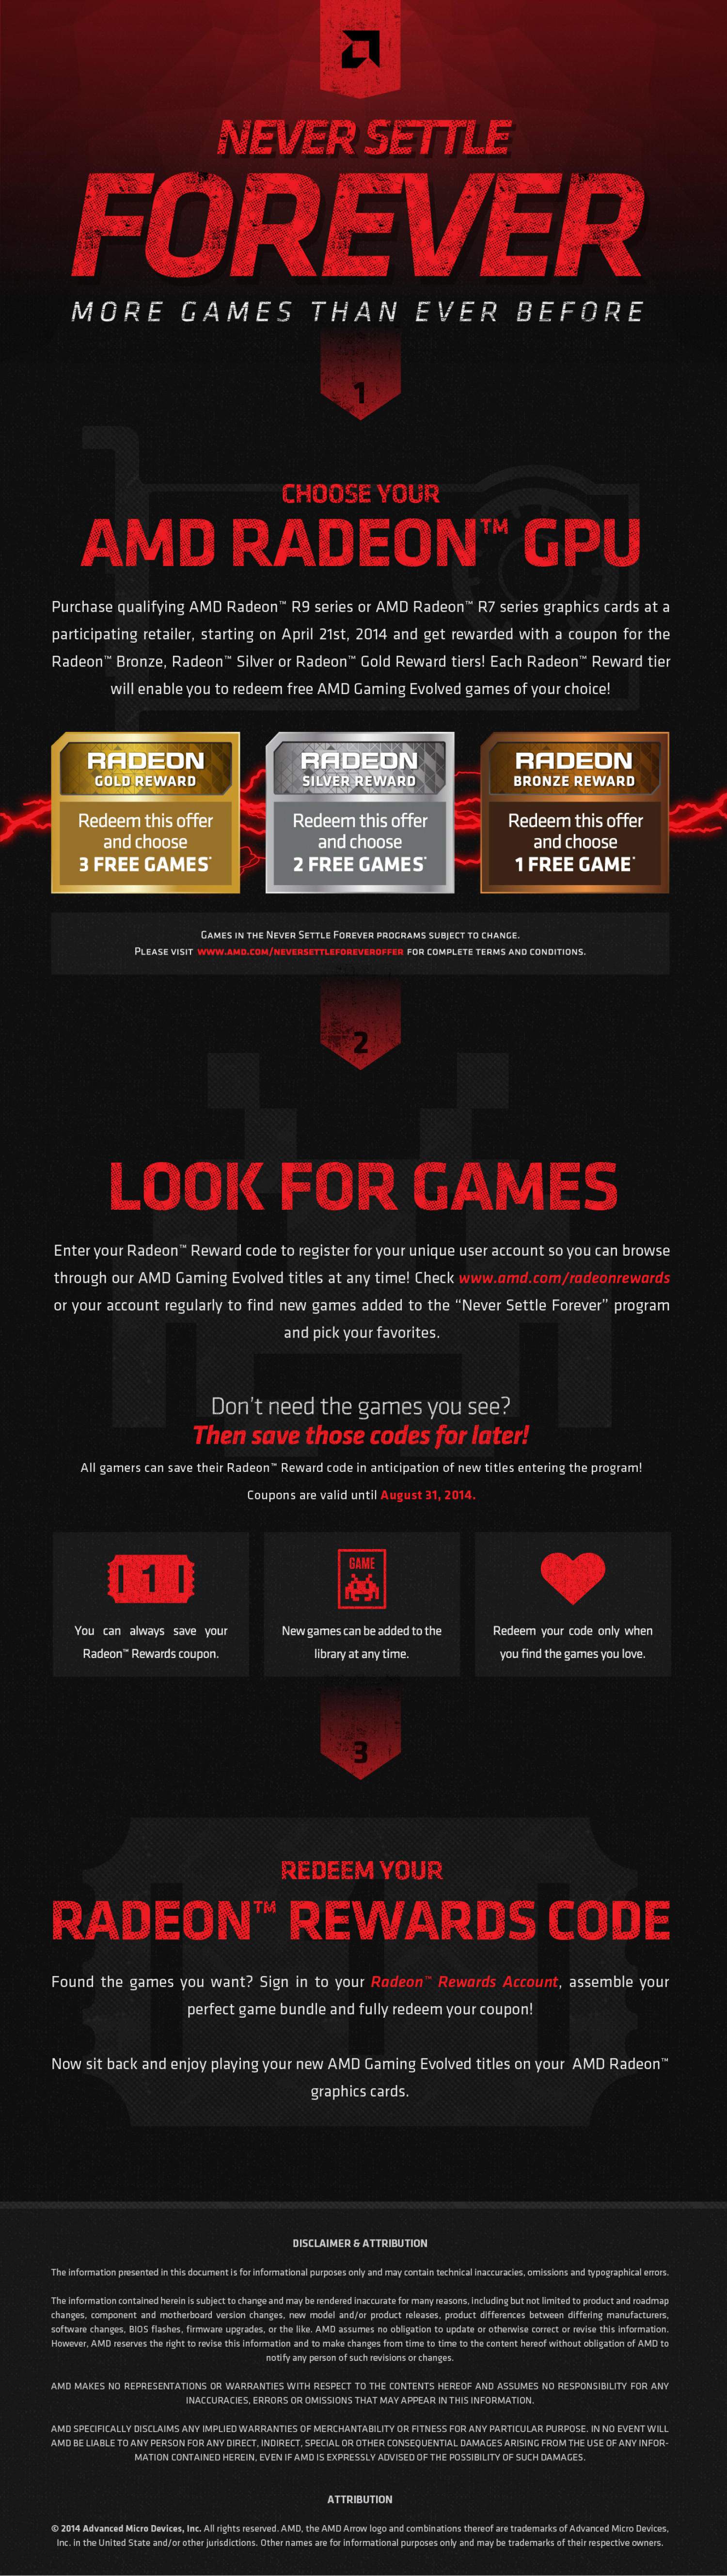 Never Settle Forever: More Games Than Ever Before Infographic